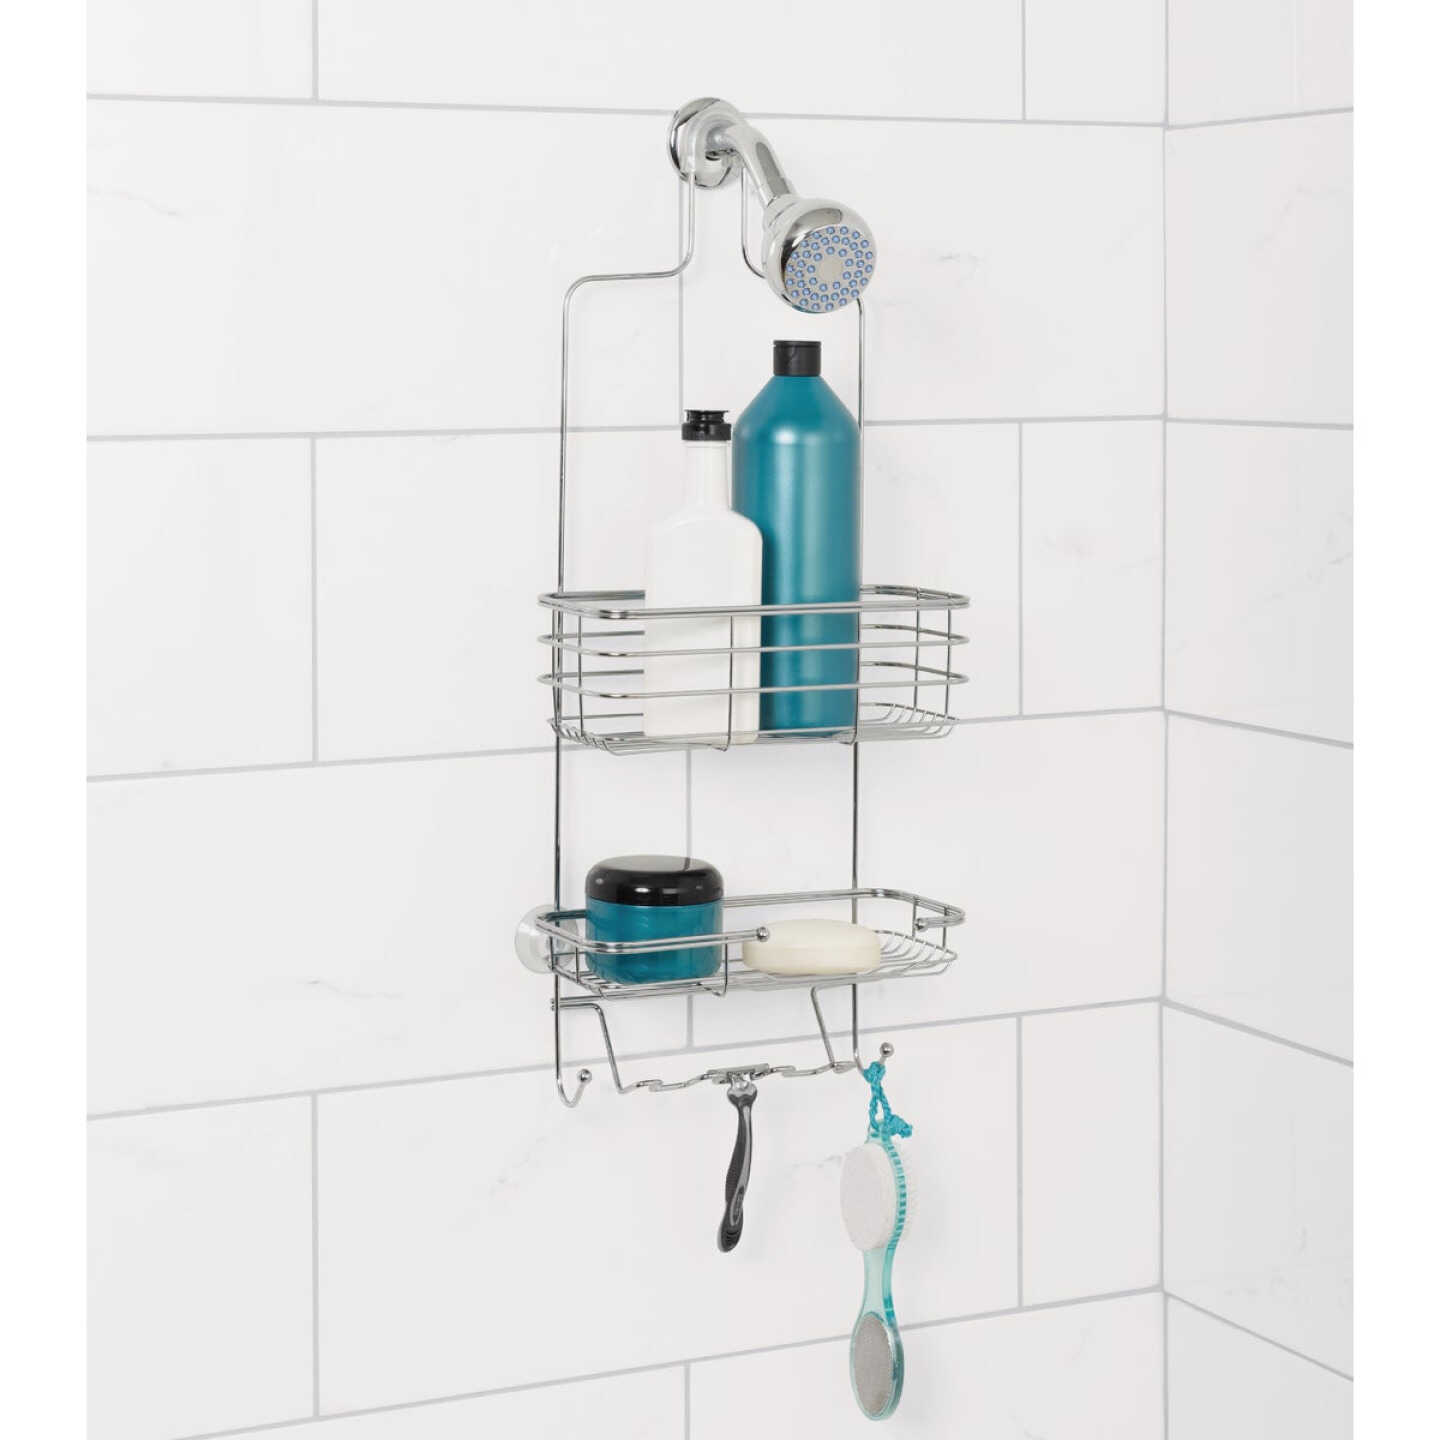 Zenna Home 10.38 In. x 24.75 In. x 4.75 In. Large Satin Nickel Shower Caddy Image 1